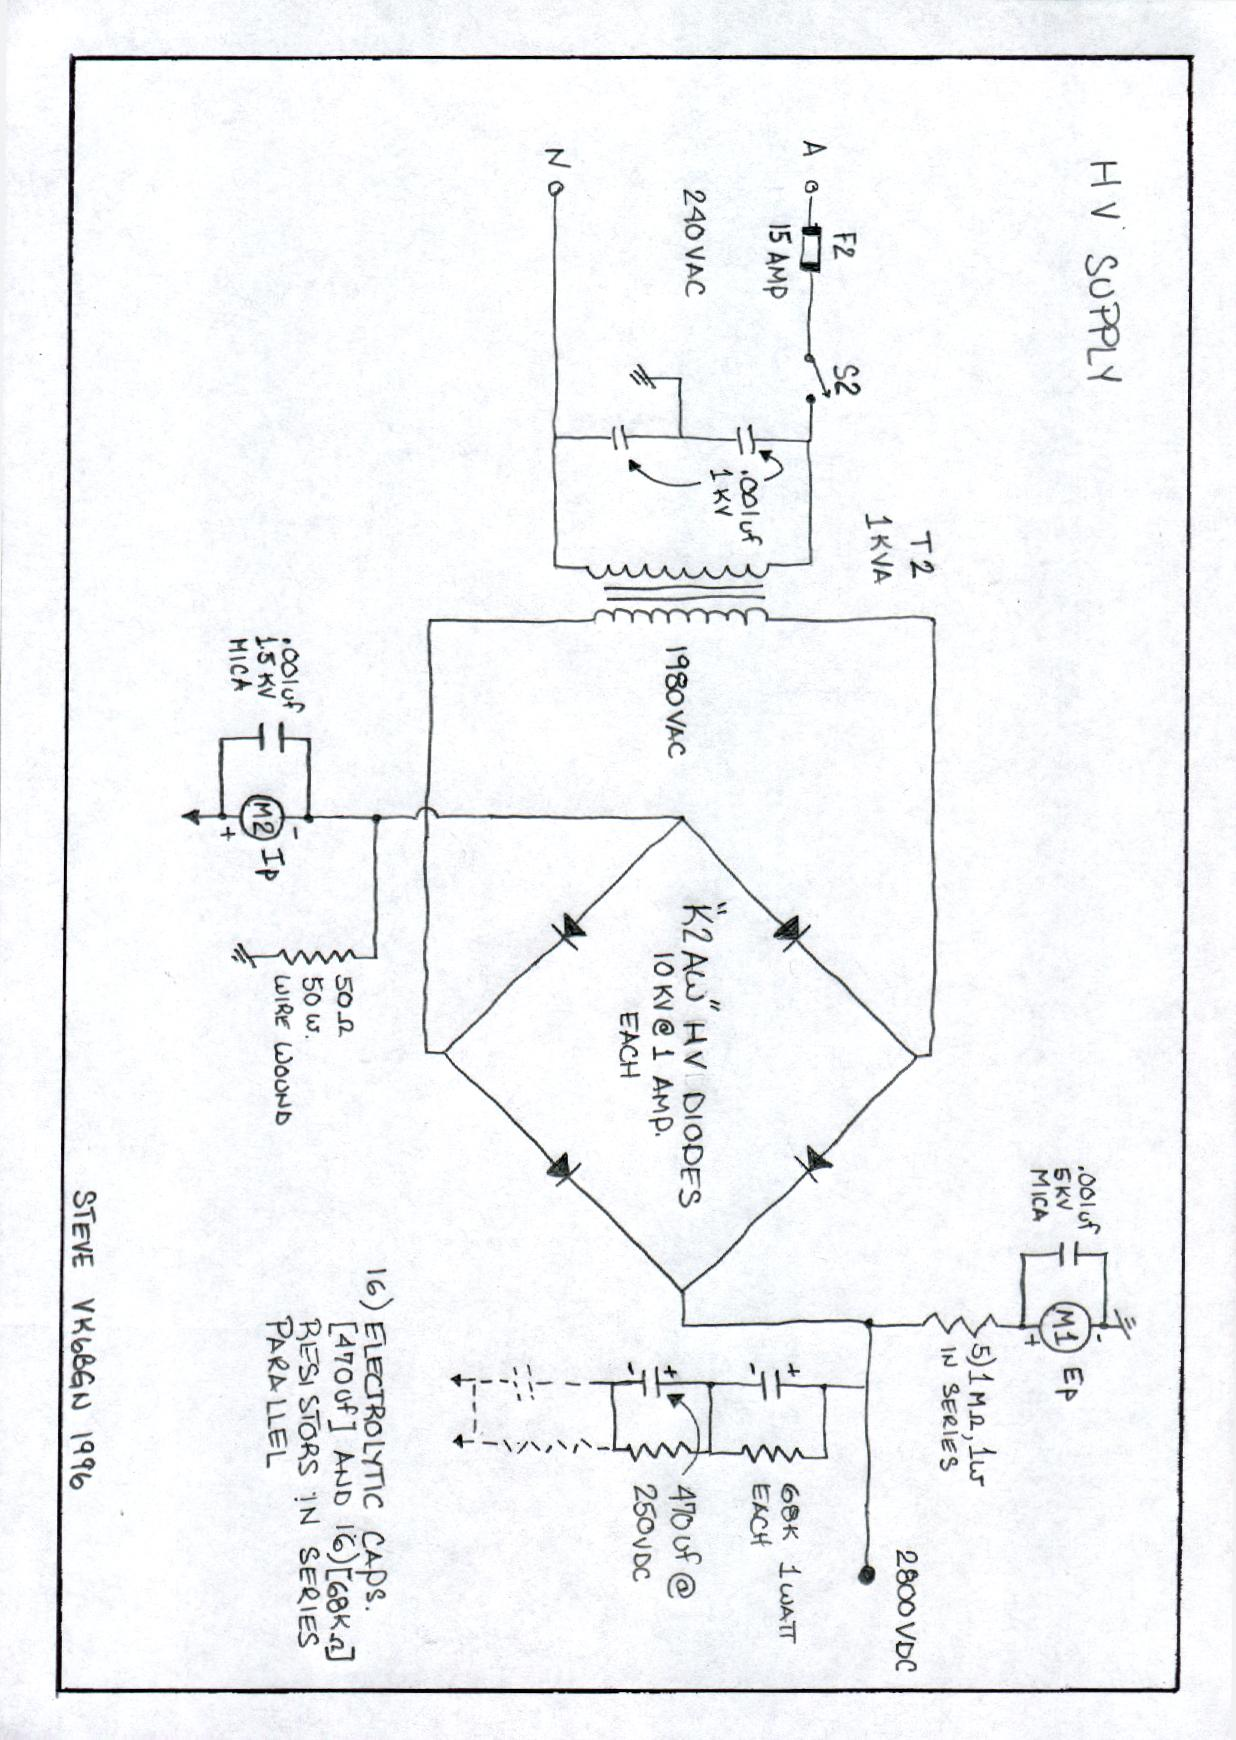 Four 813 G2daf Rf Amplifier 250vdc Wiring Diagram Schematic 1 2